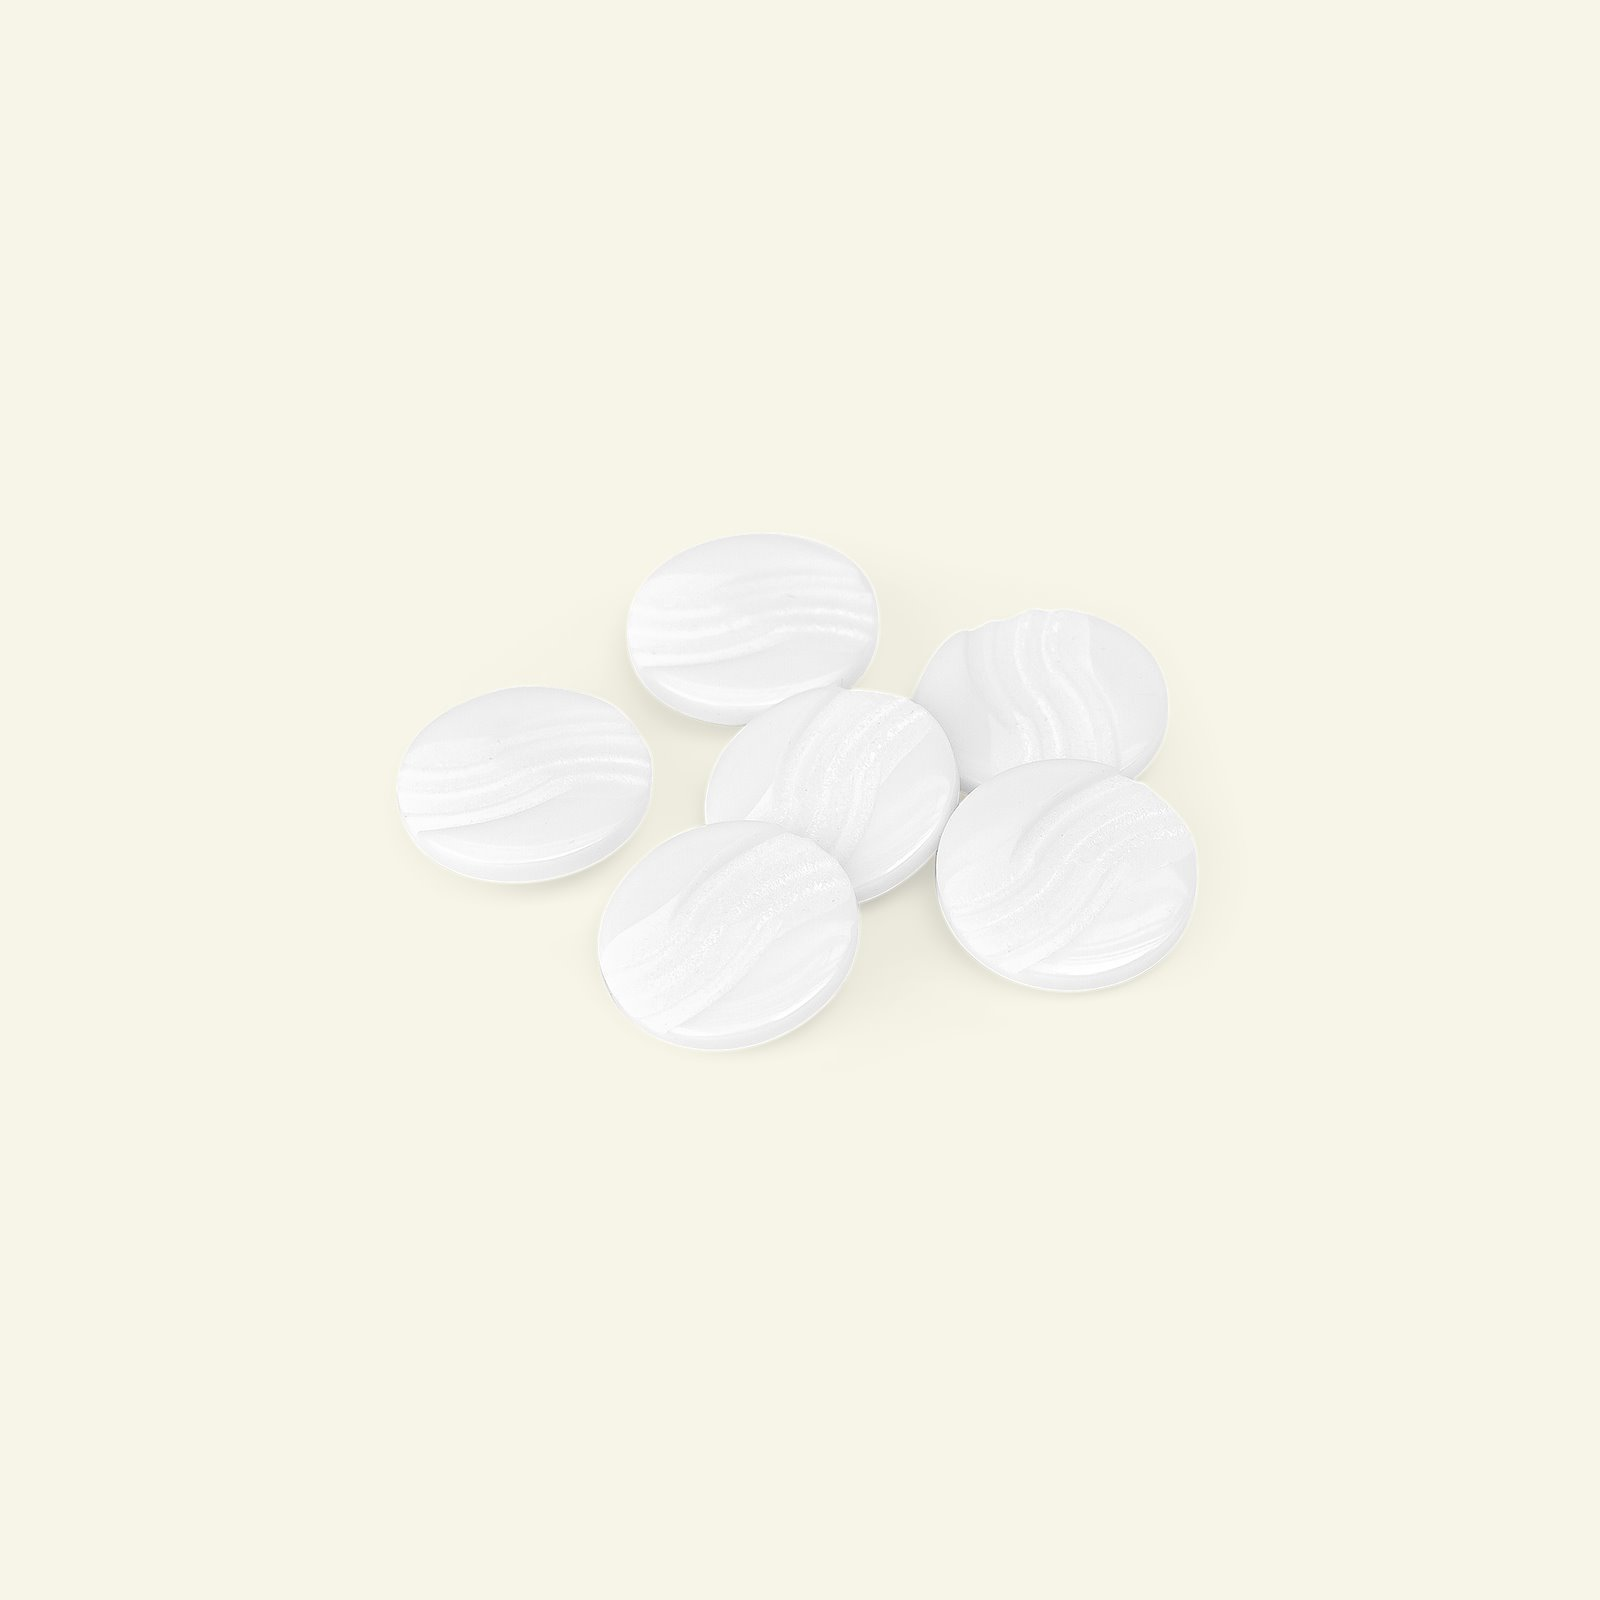 Shank button waves 18mm white 6pcs 33081_pack